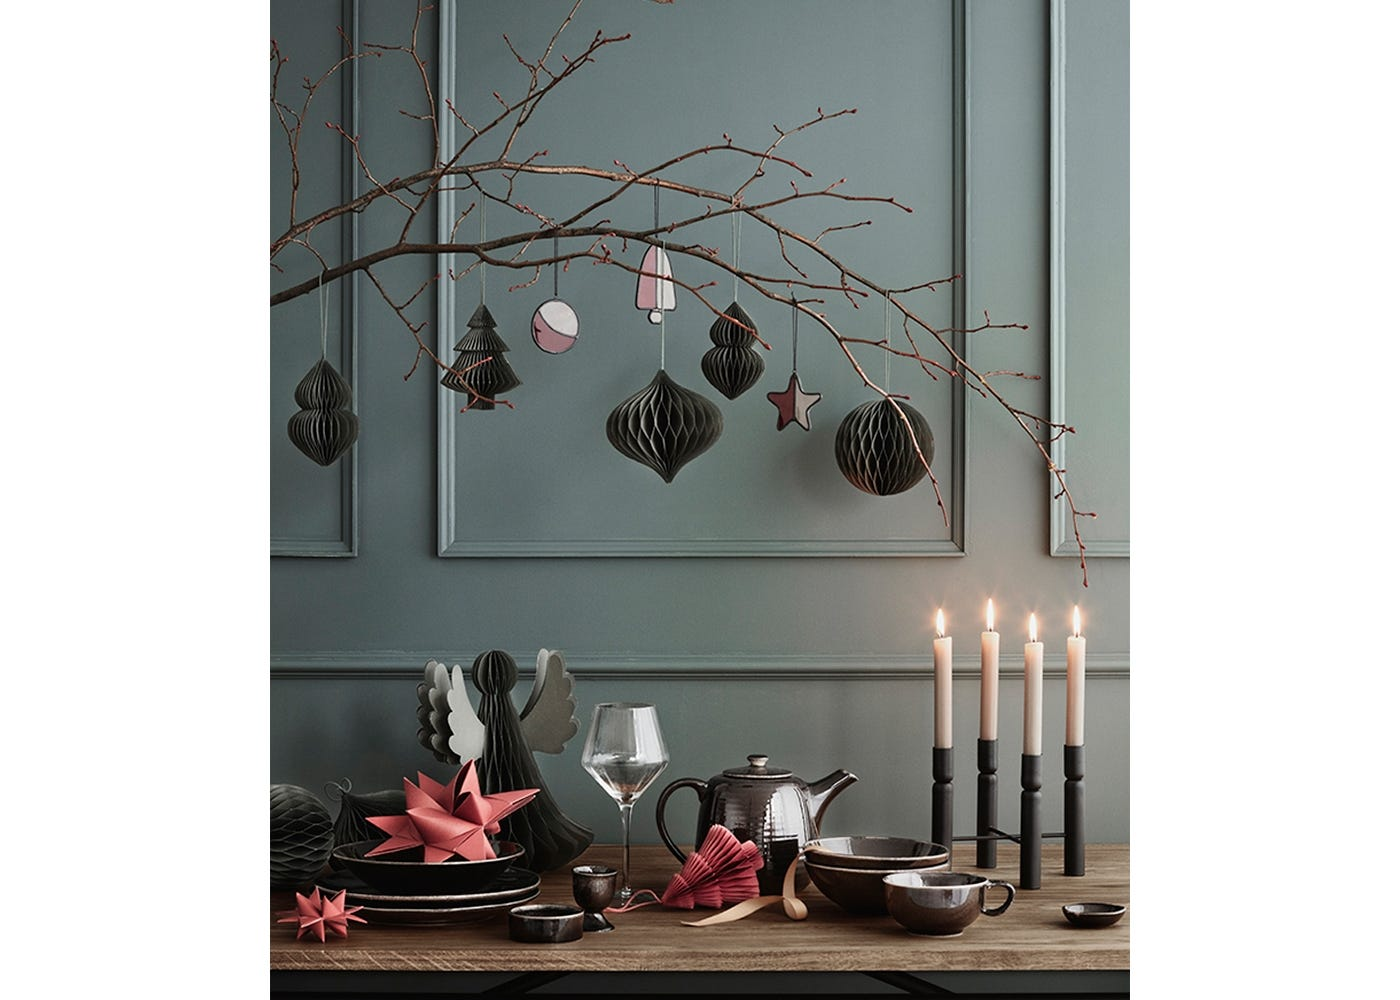 Deko Decorations in Red and Thyme. Use for a size reference